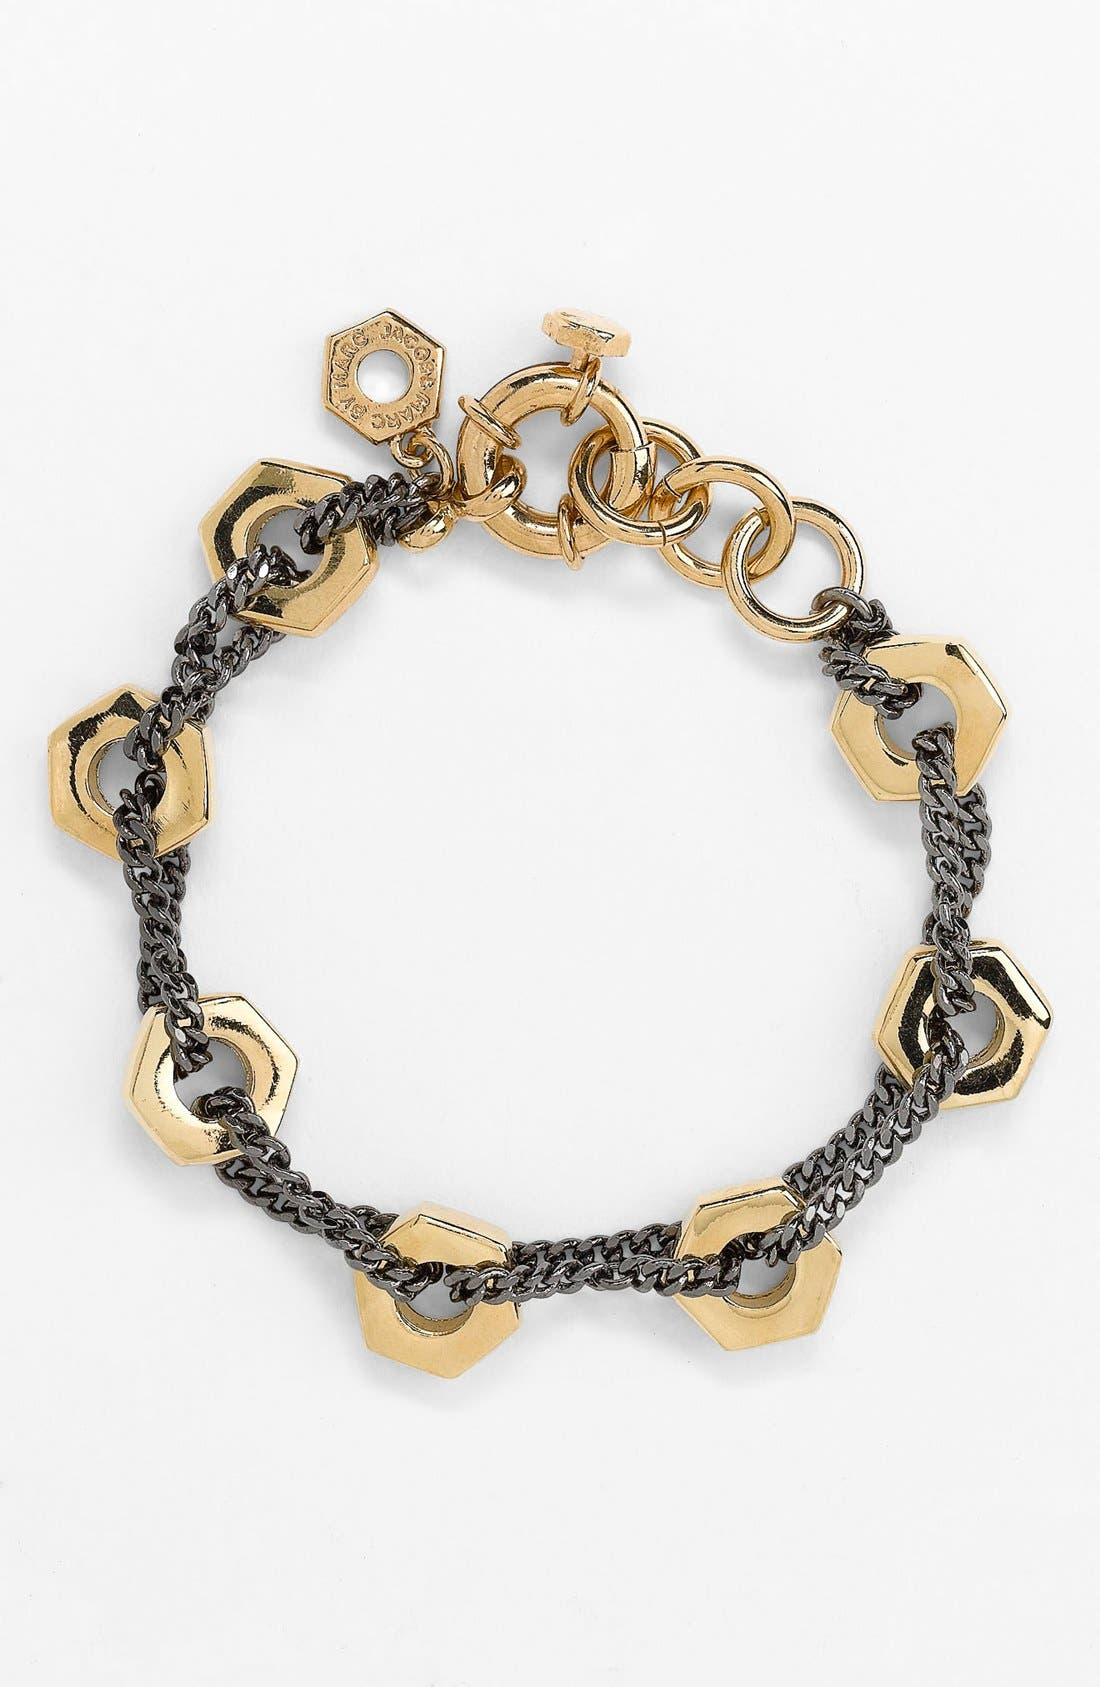 Alternate Image 1 Selected - MARC BY MARC JACOBS 'Bolts' Two Tone Link Bracelet